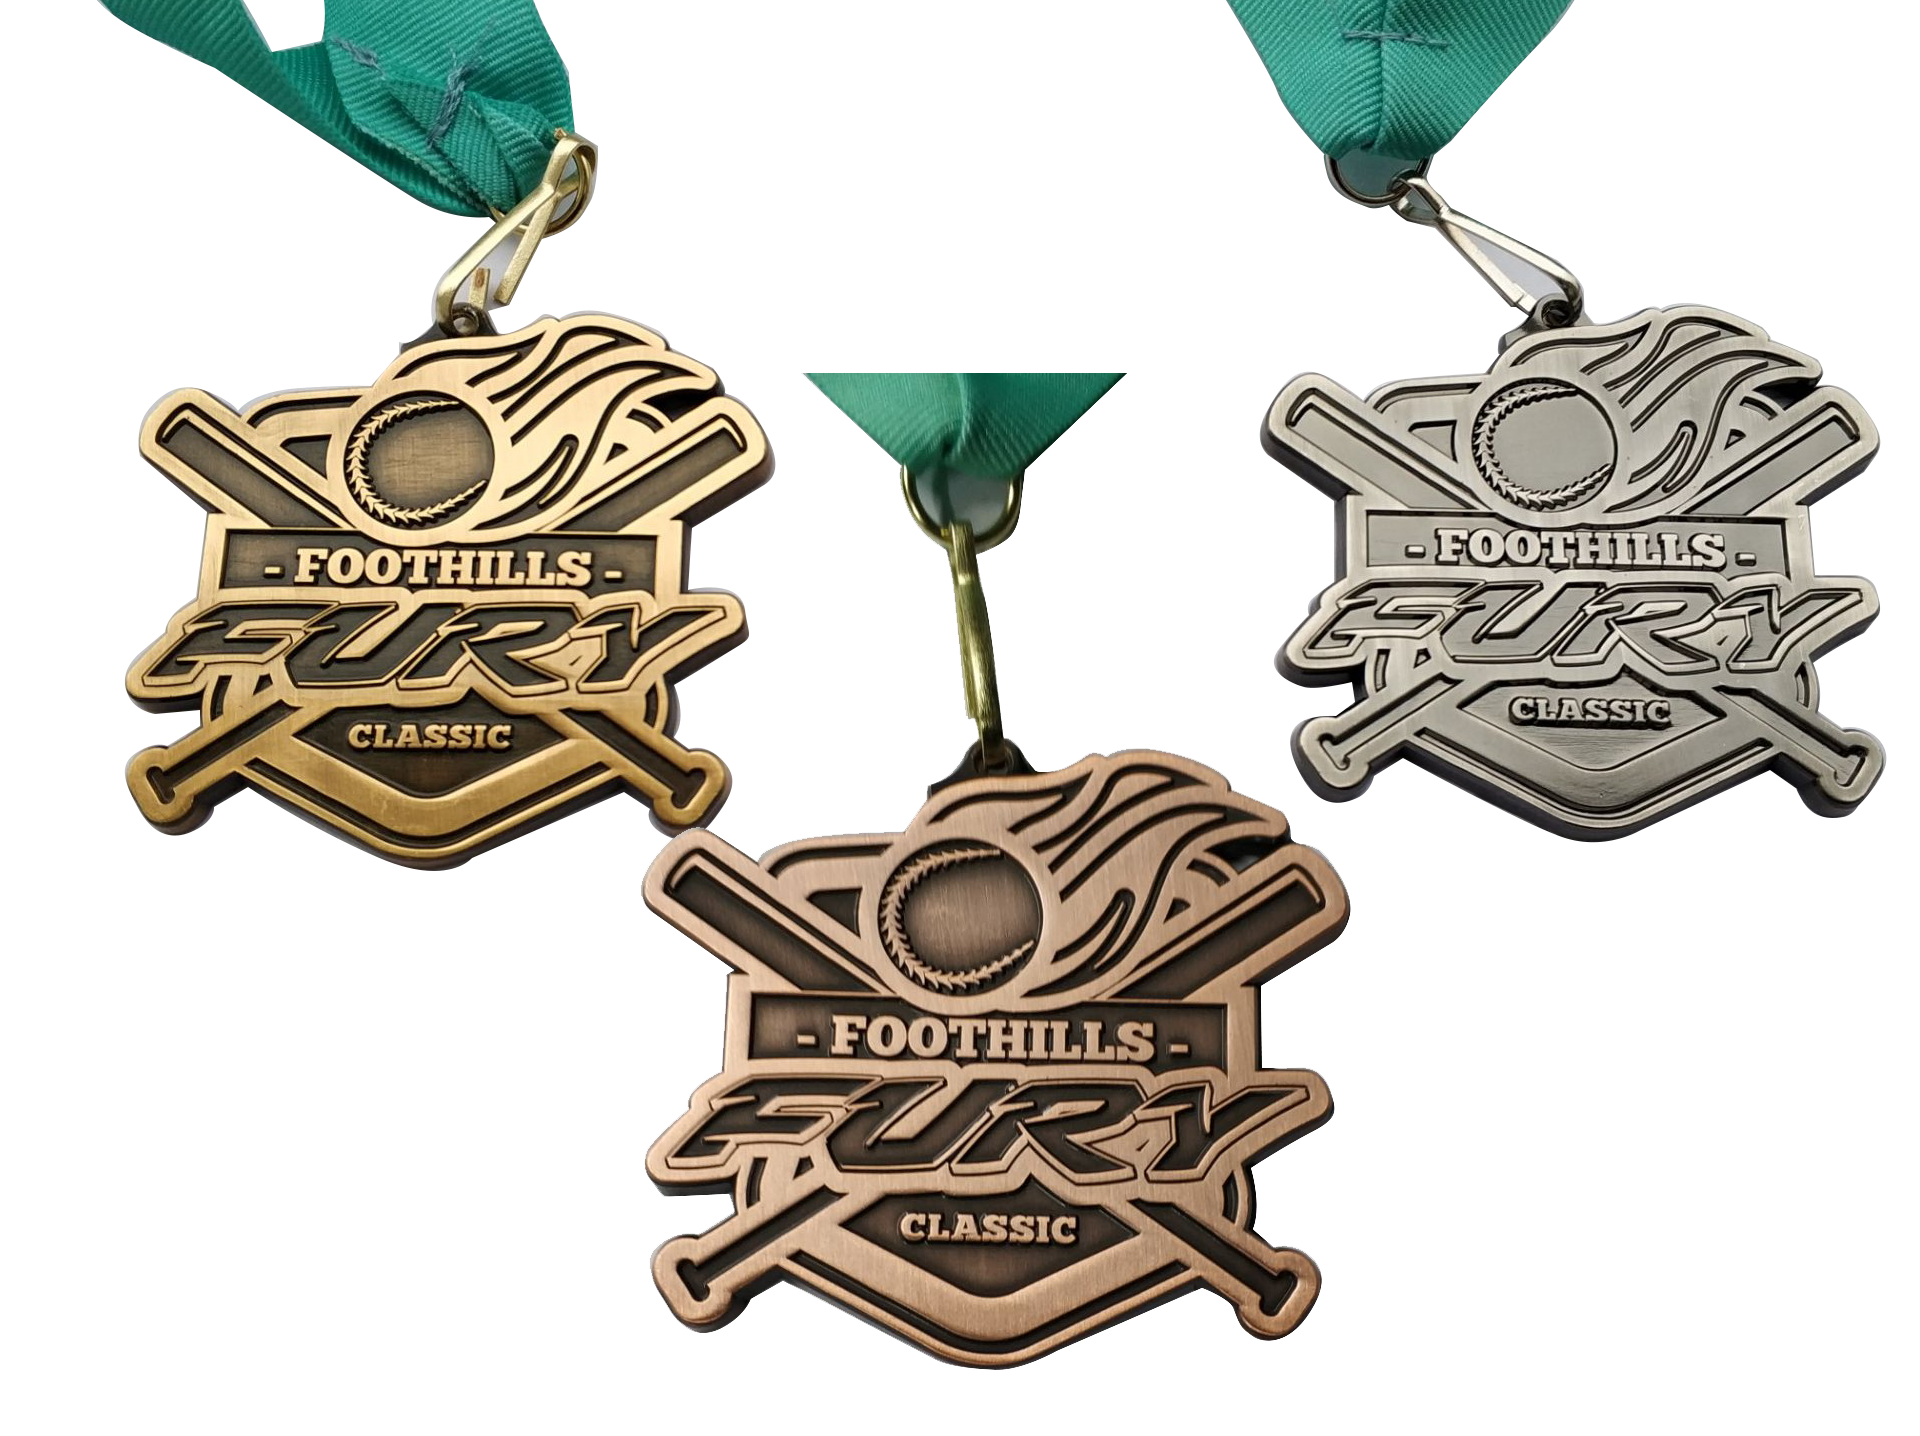 foot-hills-fury-baseball-medals